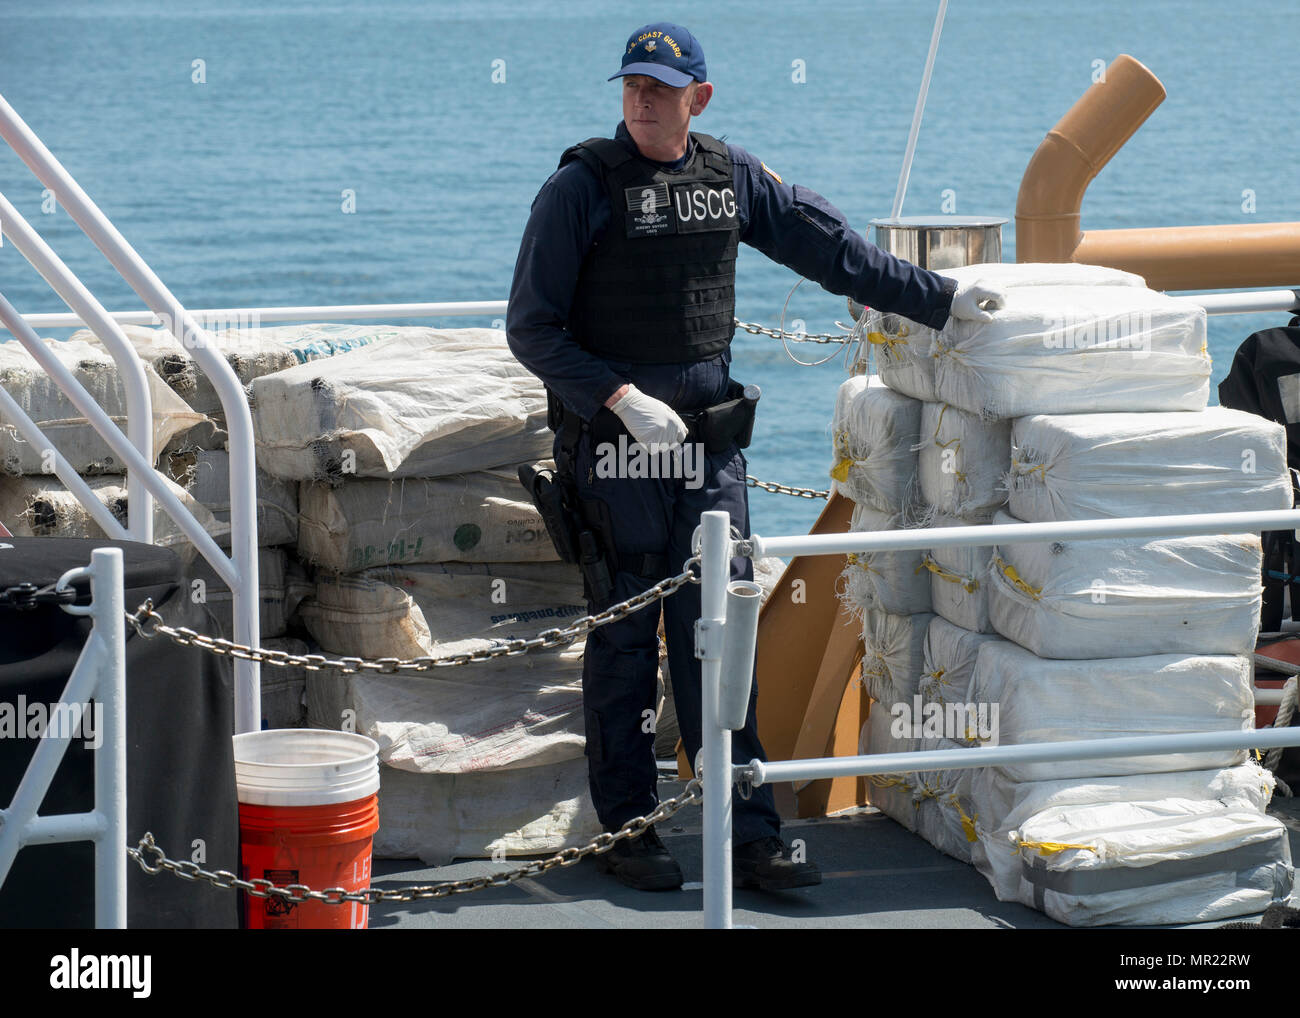 More than 3,825 pounds of cocaine await transfer to federal agents Wednesday, May 3, 2017 at Coast Guard Sector St. Petersburg, Florida. The contraband was interdicted during four separate cases supporting Operation Martillo, a joint interagency and multi-national collaborative effort among 14 Western Hemisphere and European nations to stop the flow of illicit cargo by Transnational Criminal Organizations. (U.S. Coast Guard photo by Petty Officer 1st Class Michael De Nyse) - Stock Image